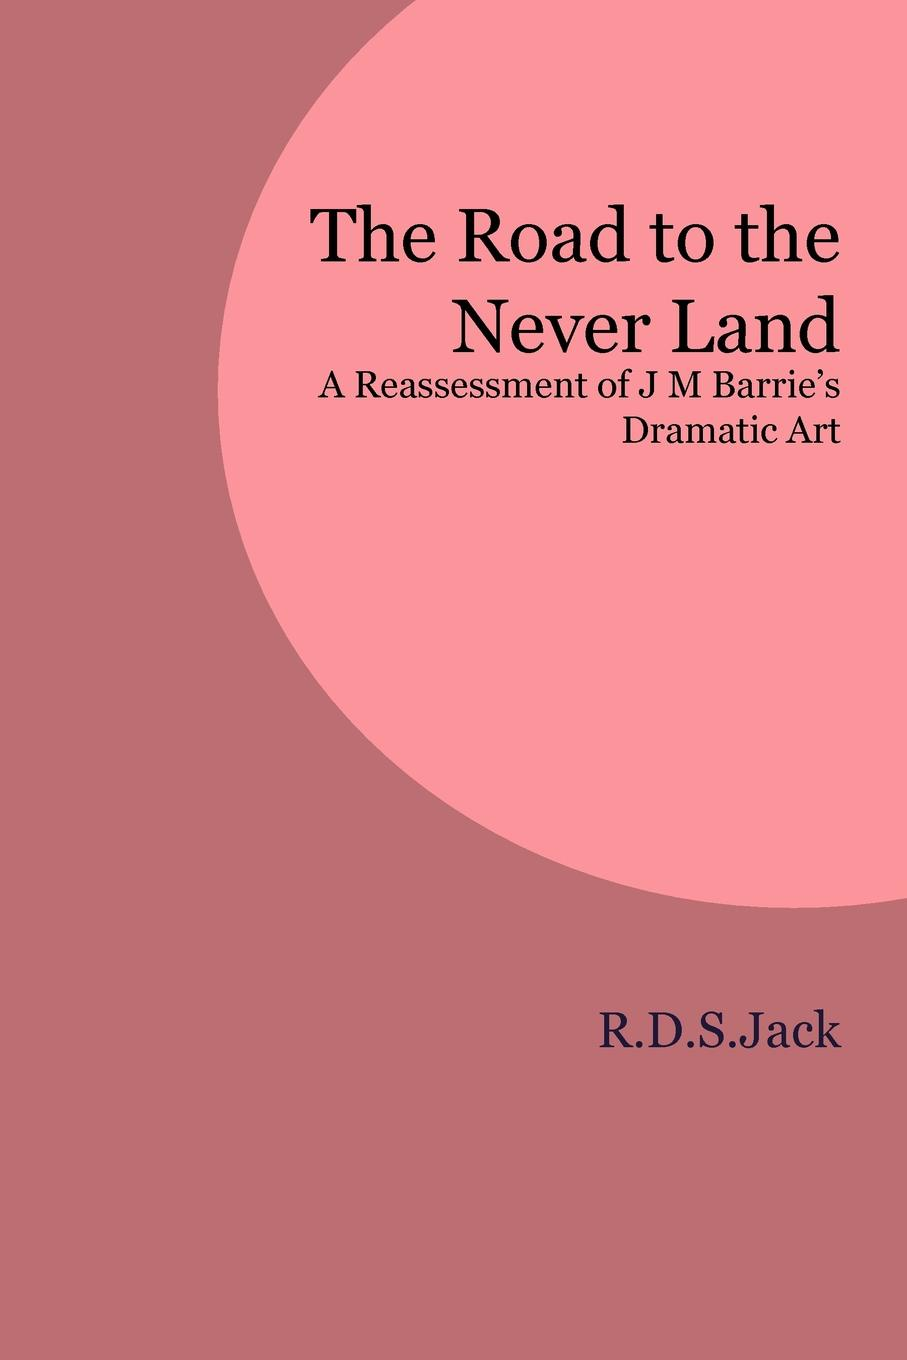 R.D.S. Jack The Road to the Never Land. A Reassessment of J M Barrie's Dramatic Art